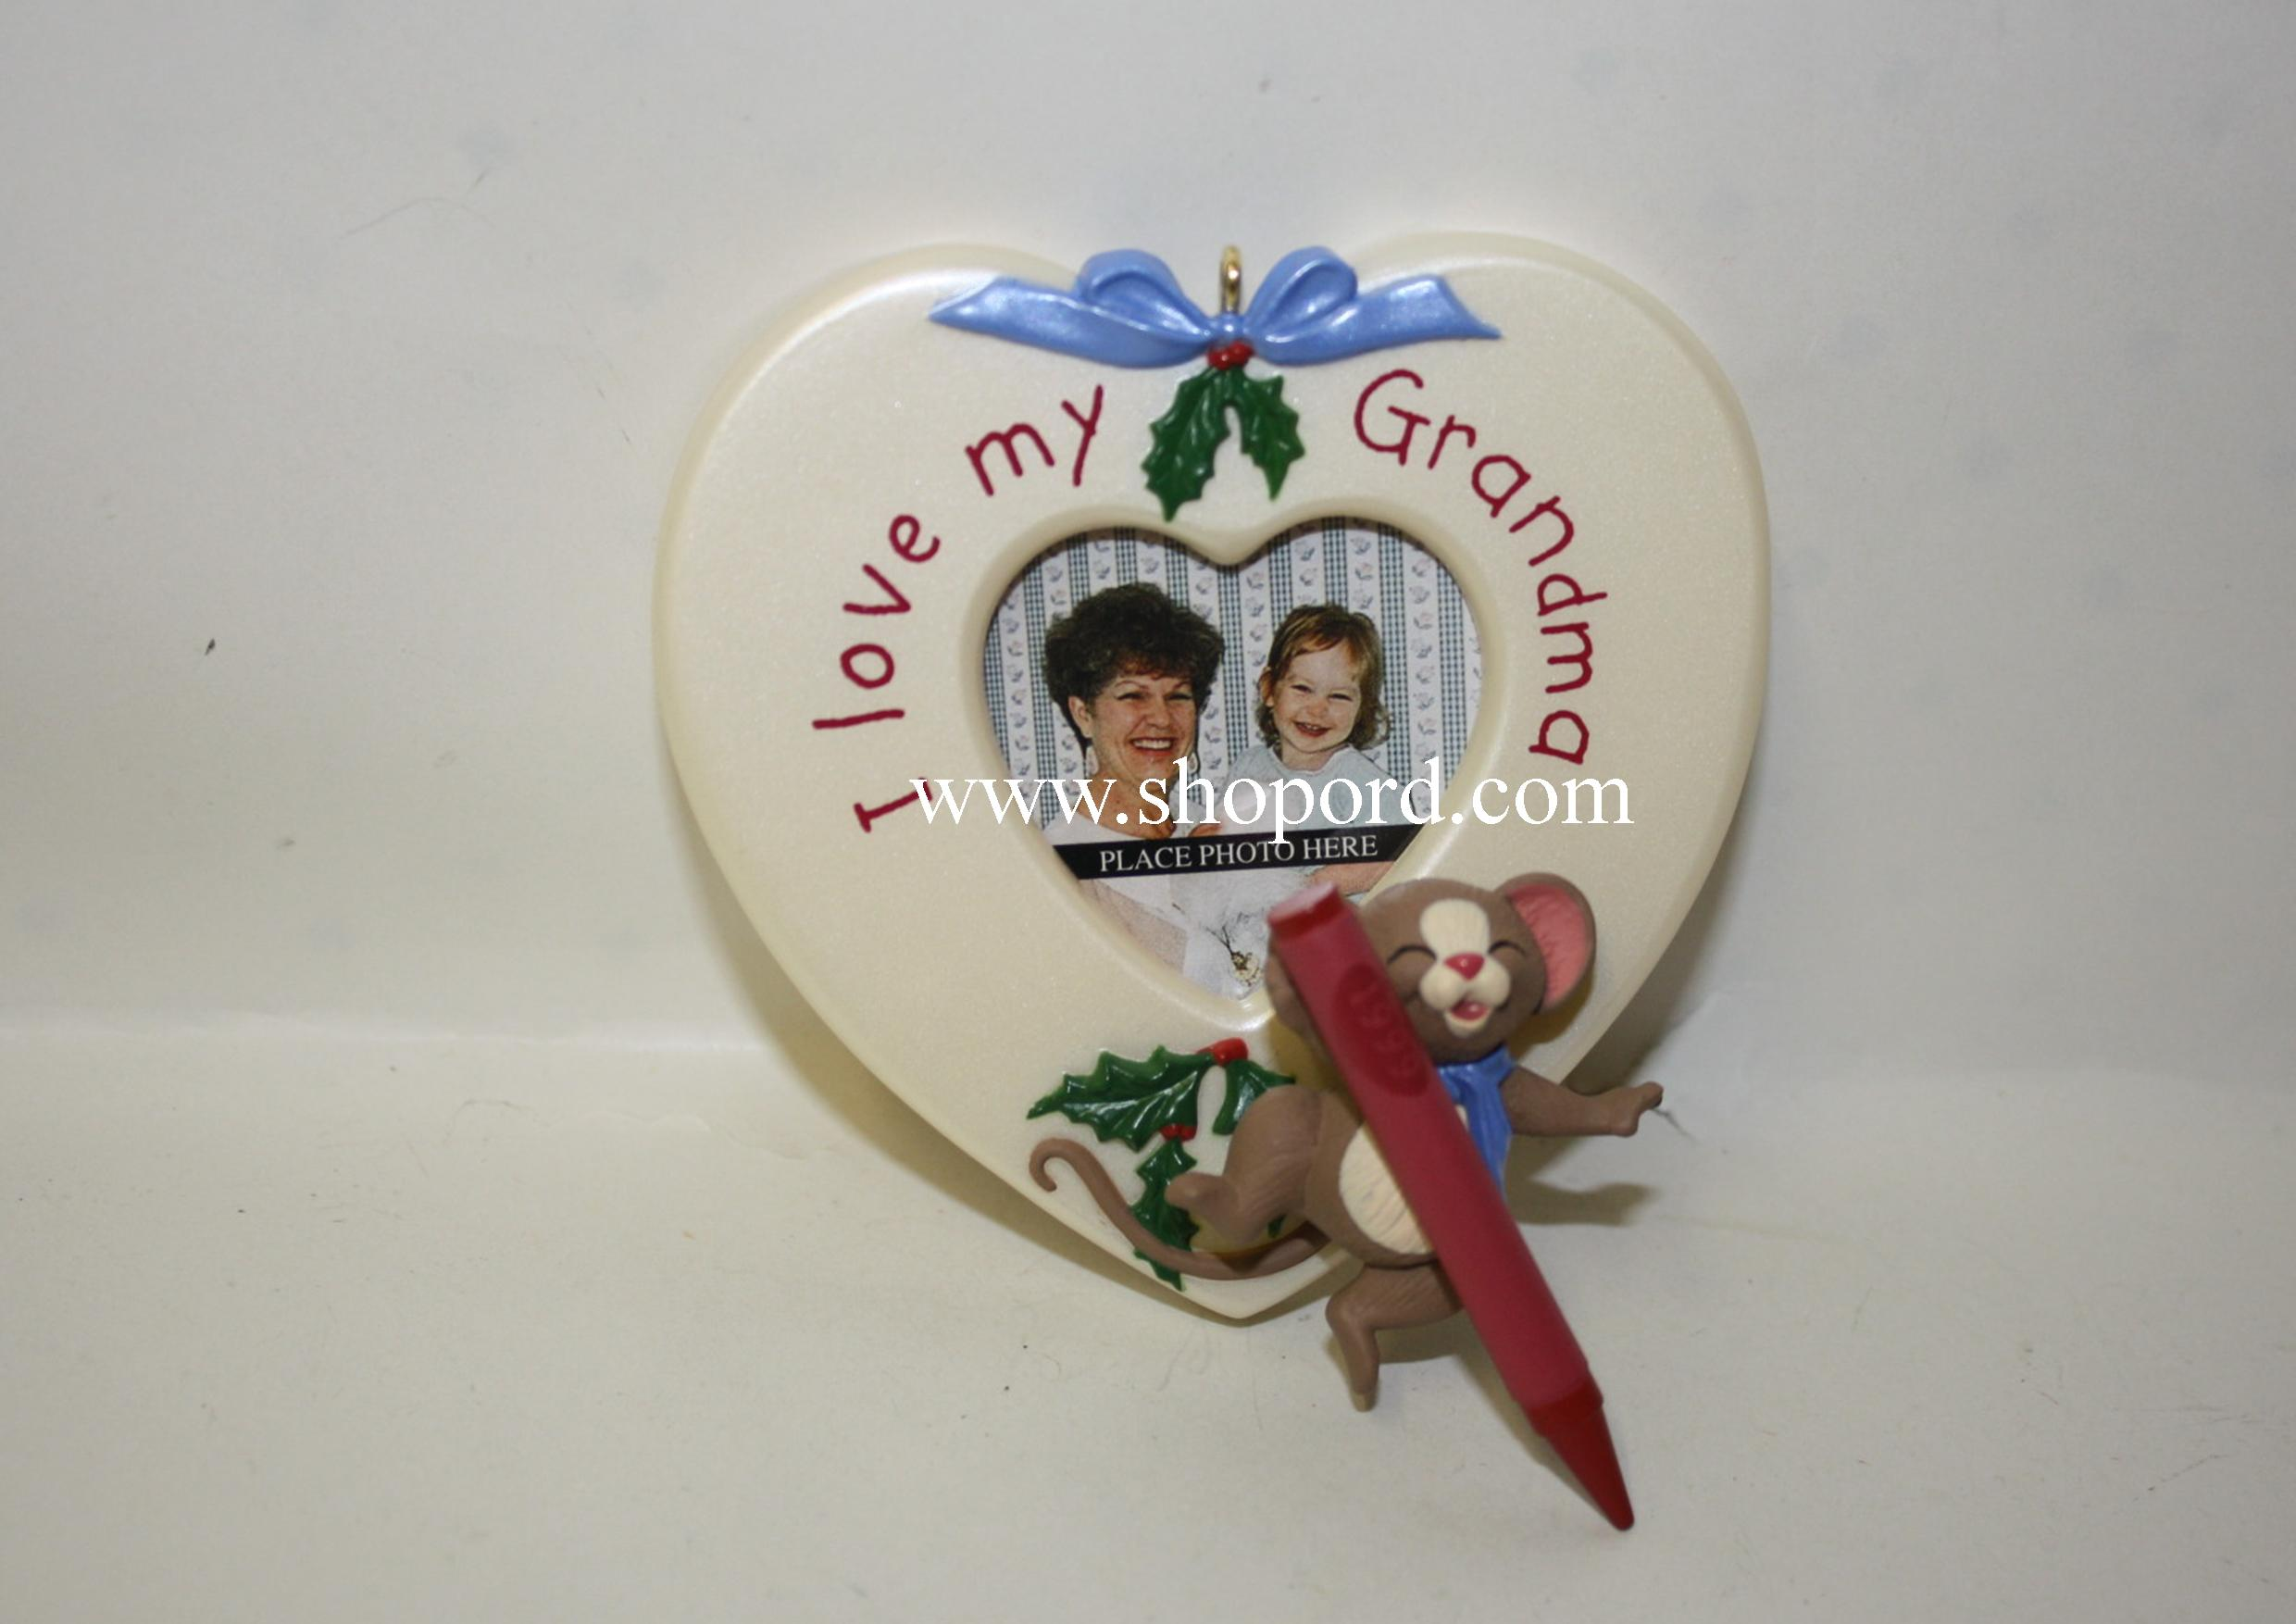 Hallmark 1999 For My Grandma Ornament Photo Holder QX6747 Slightly Bent Box